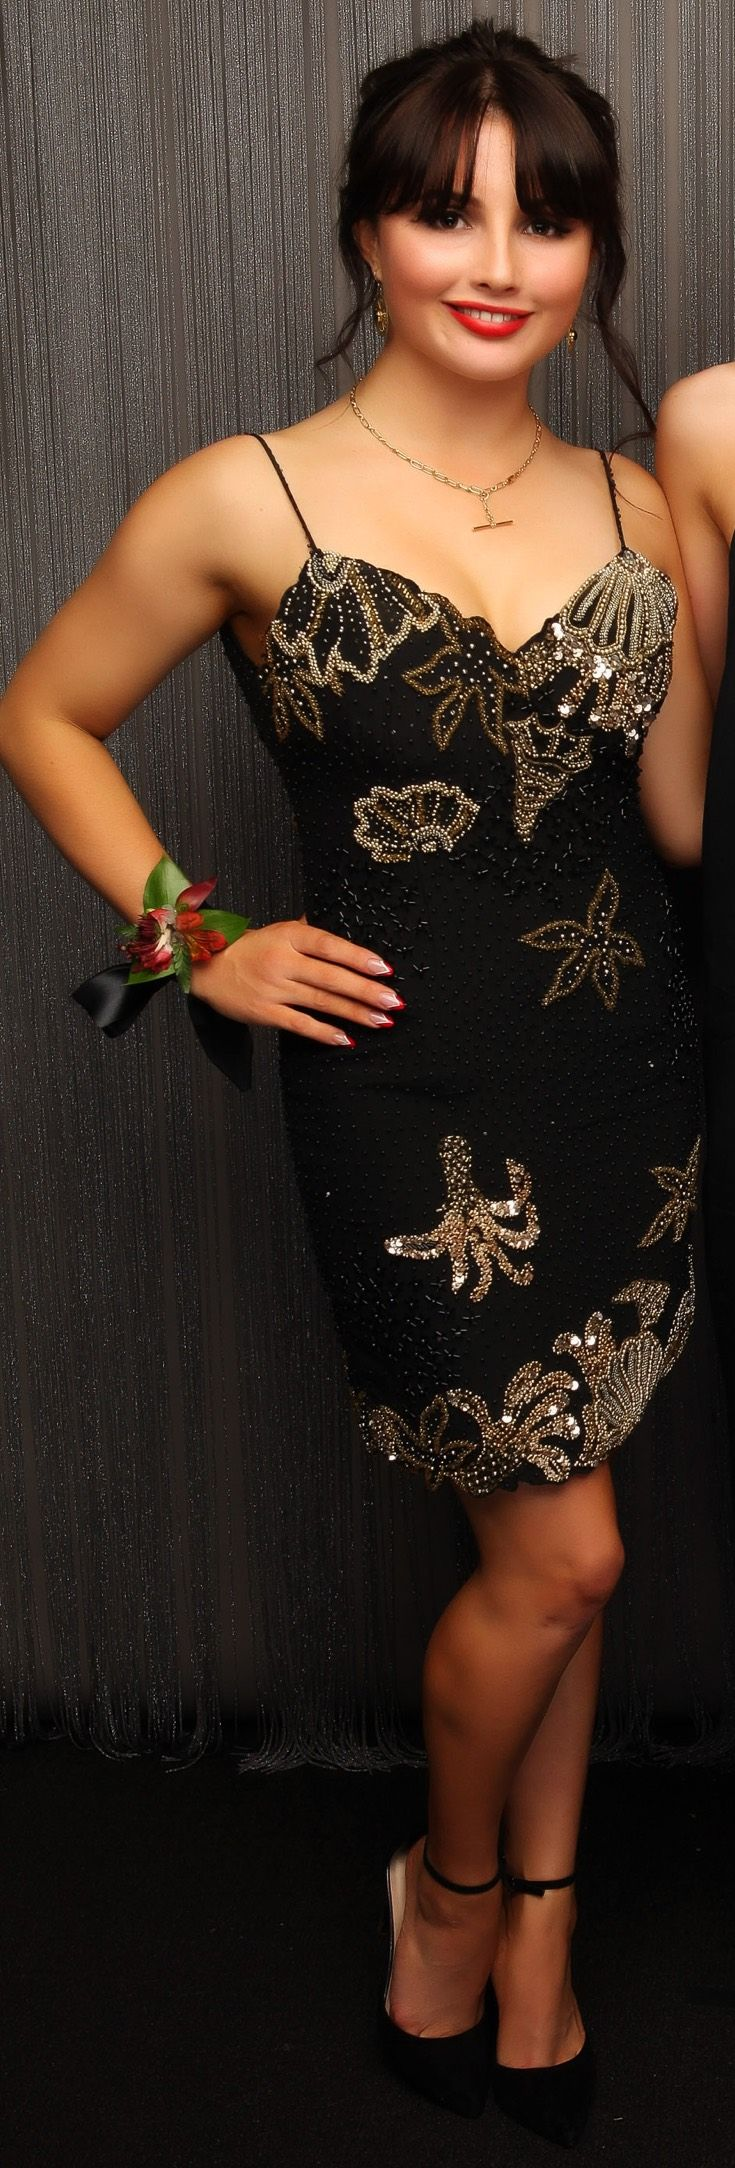 Epsom Girls Grammar Ball 2015. Classic Hollywood glamour look, and fab nails too! www.whitedoor.co.nz